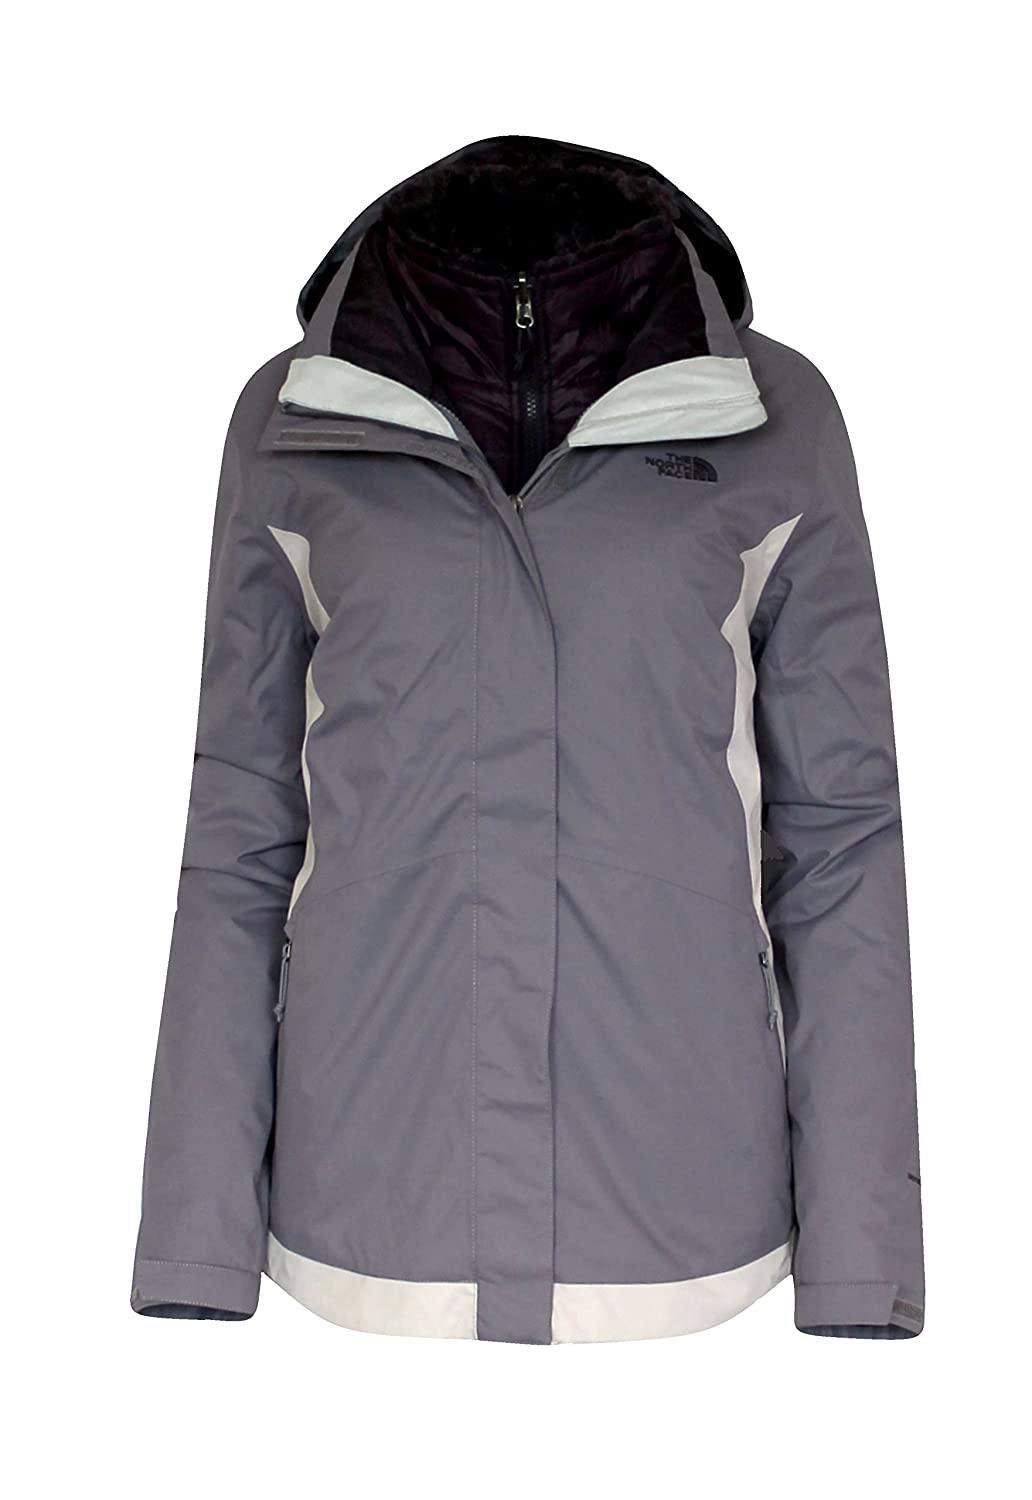 3645914a0880 Amazon.com  The North Face Women s MOSSBUD SWIRL Triclimate 3 in 1 ...